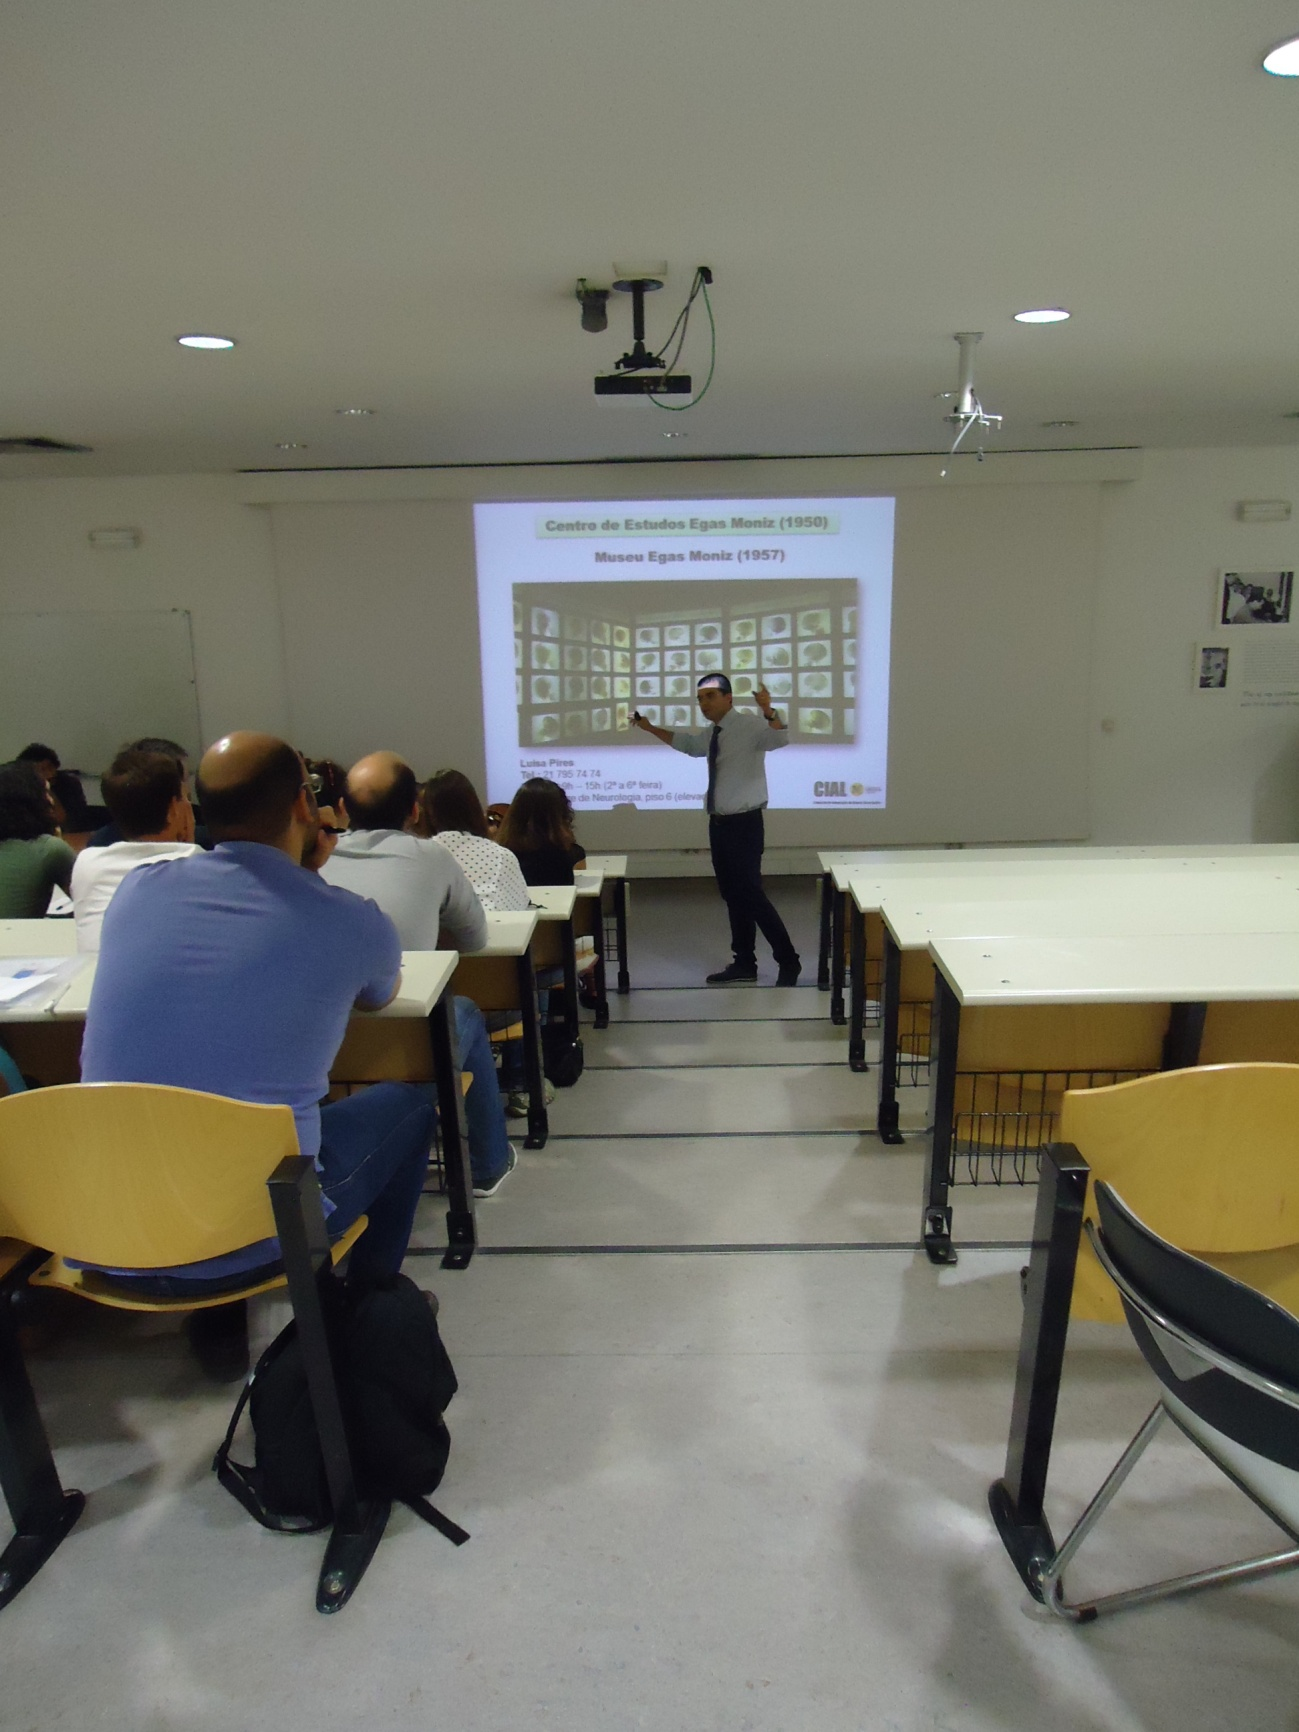 Student Cláudio Maroco during the presentation of CIAL